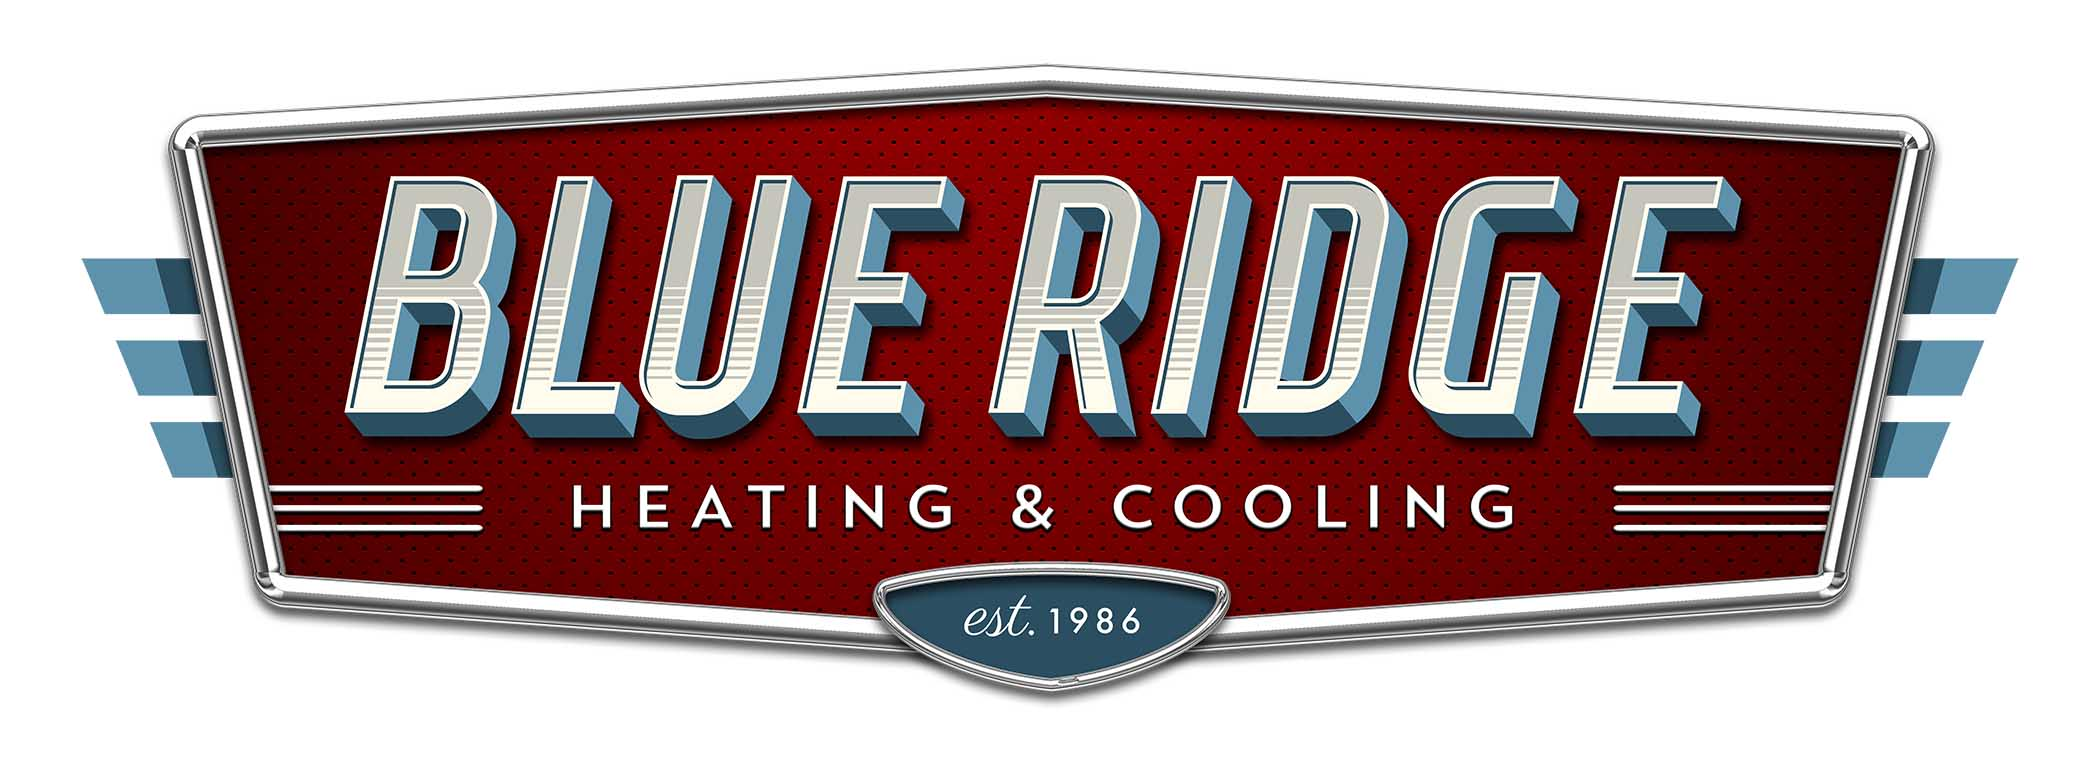 Blue Ridge Heating And Cooling Inc